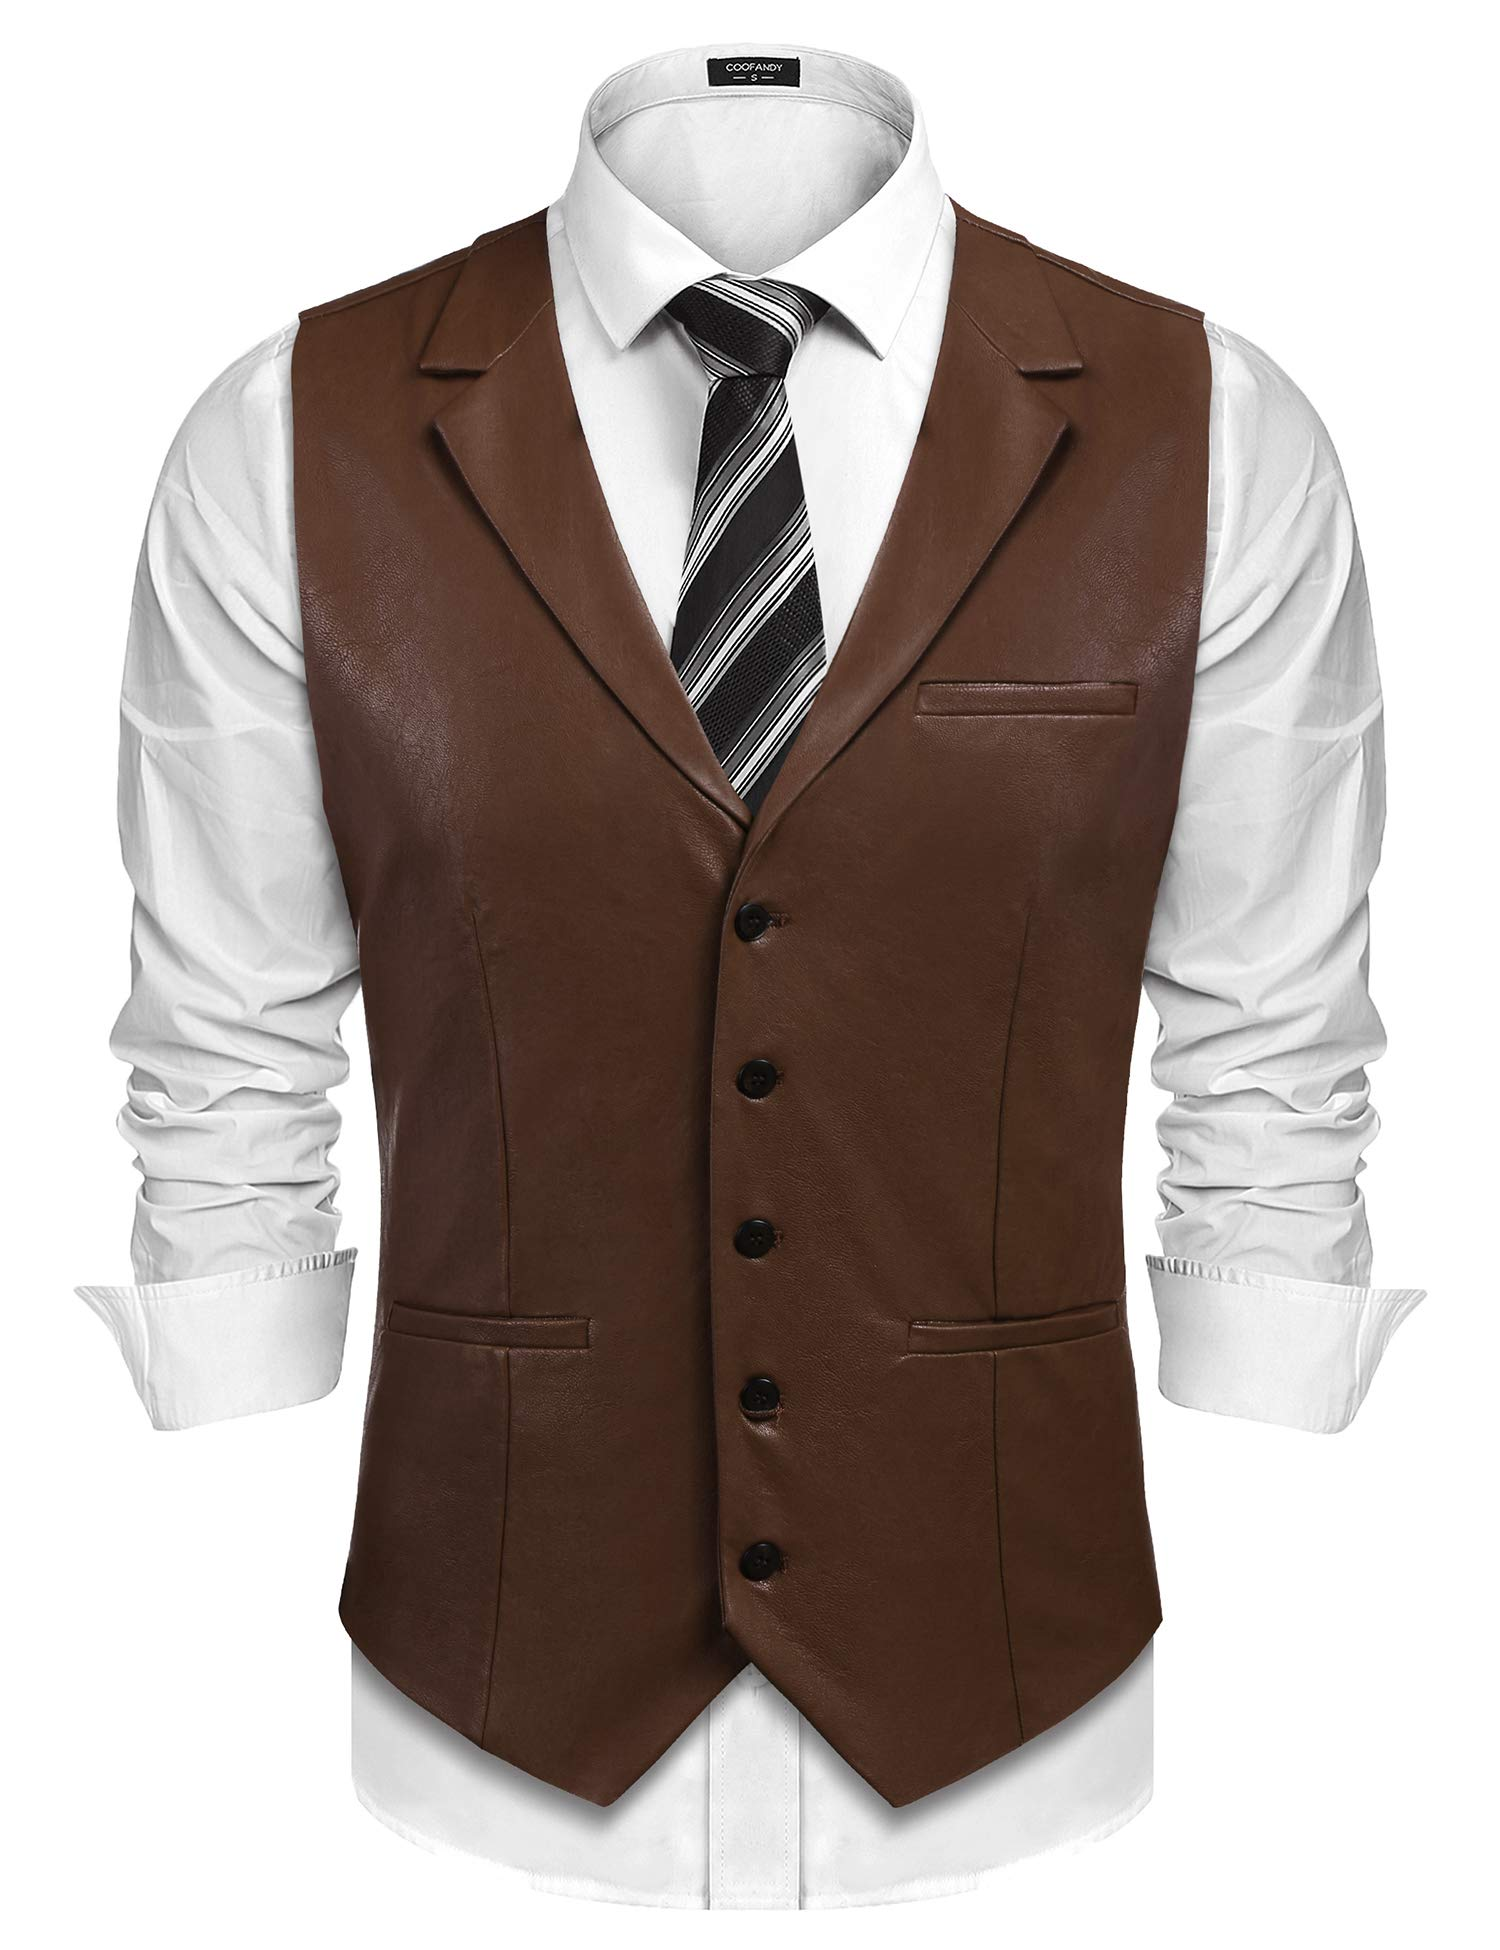 COOFANDY Mens Leather Vest Casual Western Vest Jacket Lightweight V-Neck Suit Vest Waistcoat Dark Brown by COOFANDY